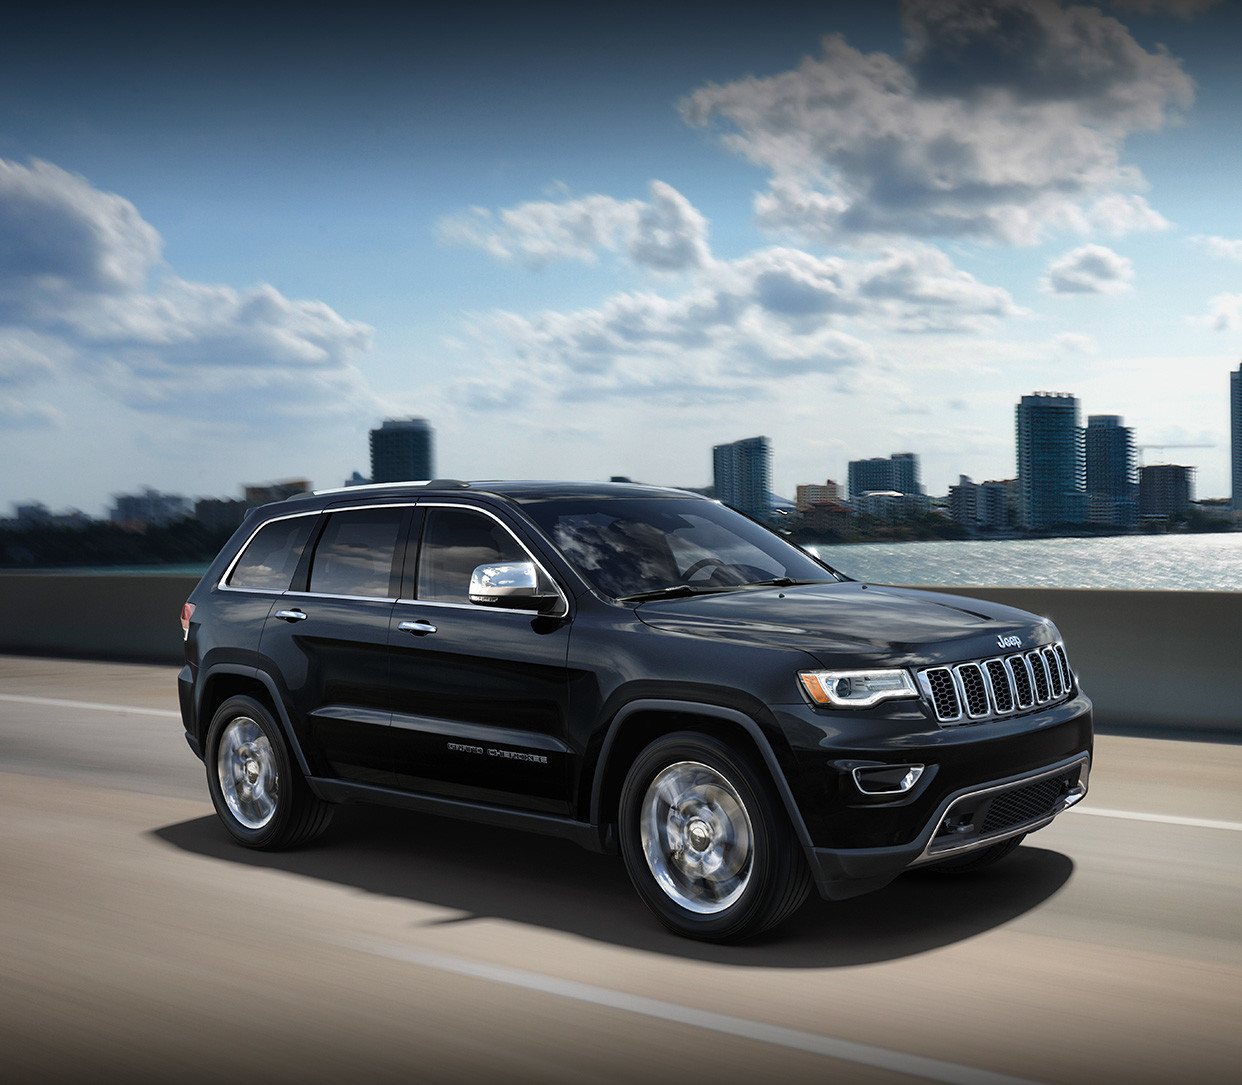 2019 Jeep Grand Cherokee - Most Awarded SUV Ever